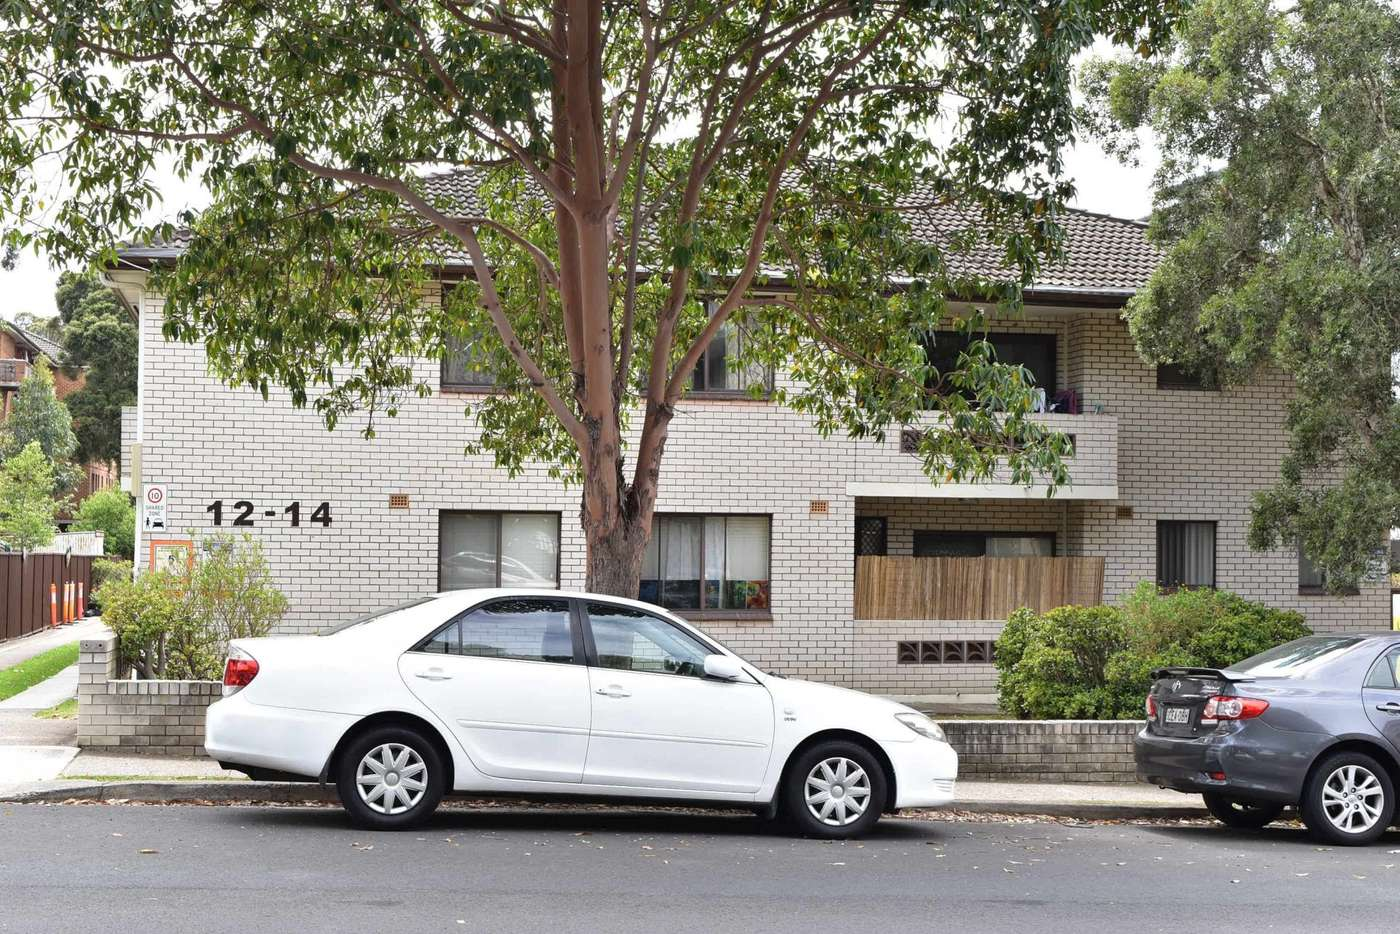 Main view of Homely unit listing, 1/12-14 Mary Street, Lidcombe NSW 2141